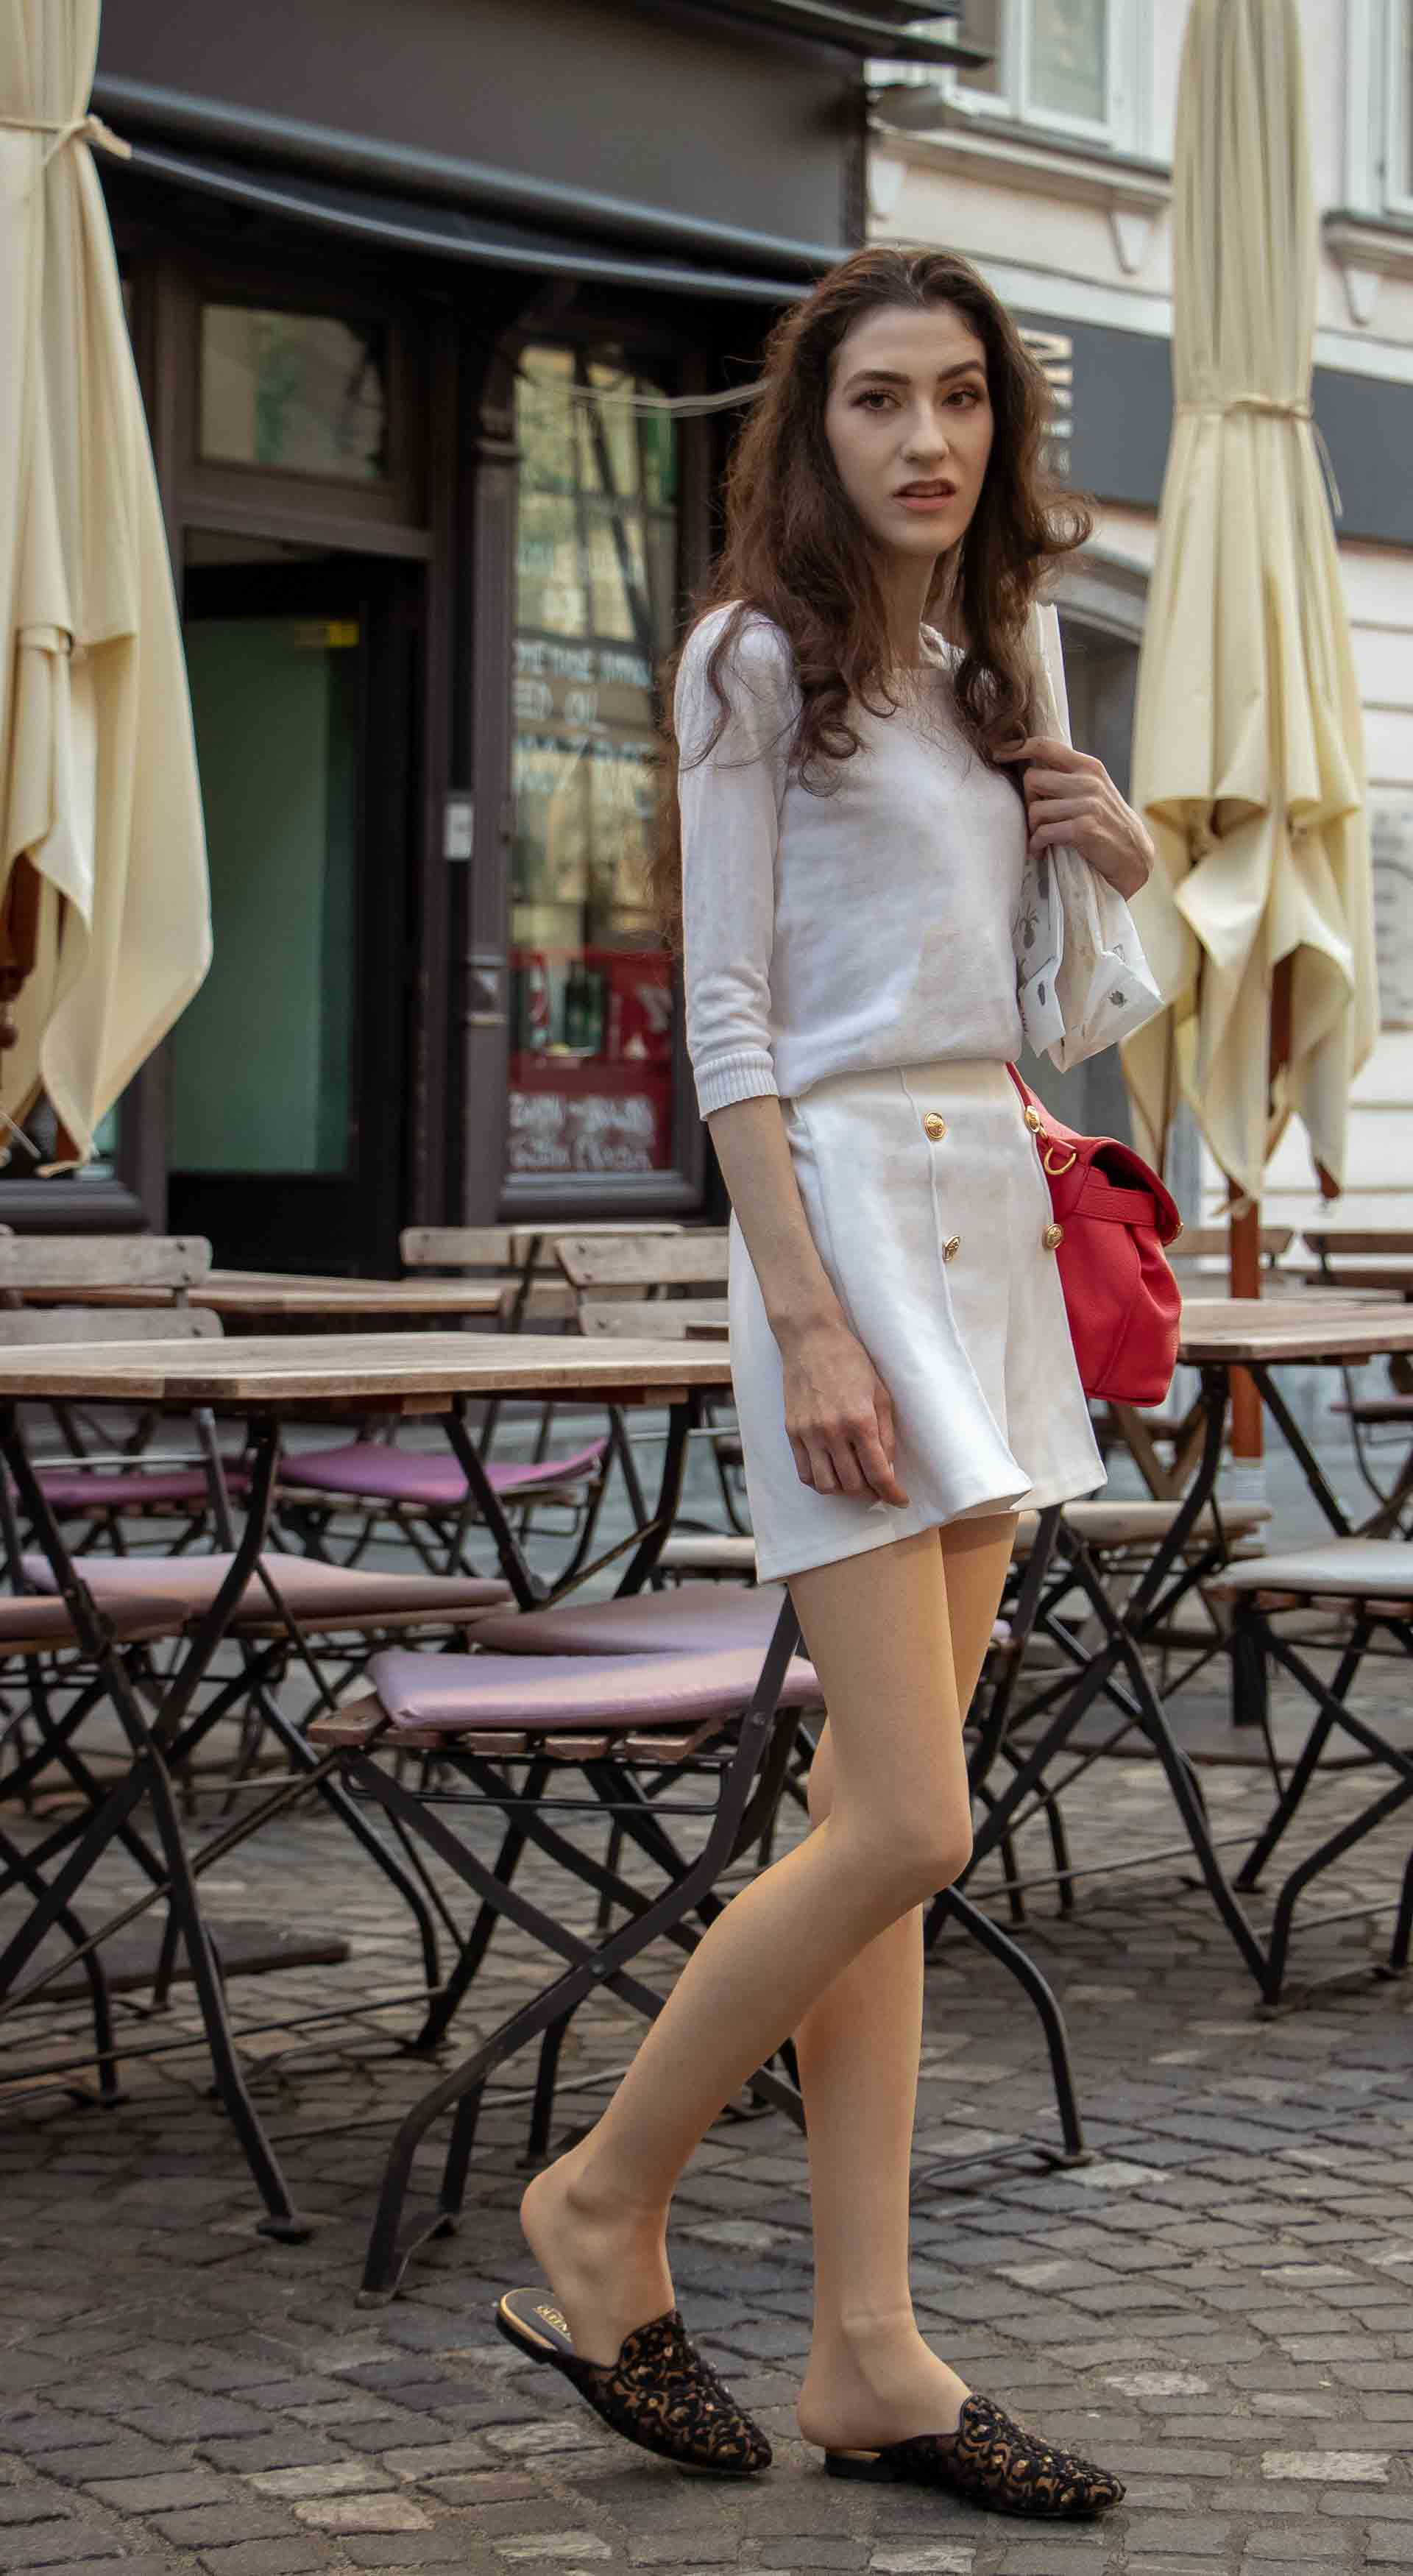 Beautiful Slovenian Fashion Blogger Veronika Lipar of Brunette from Wall wearing all in white outfit, a white sweater, white tailored shorts, black flat slipper mules, pink top handle bag, a paper bag when it's hot